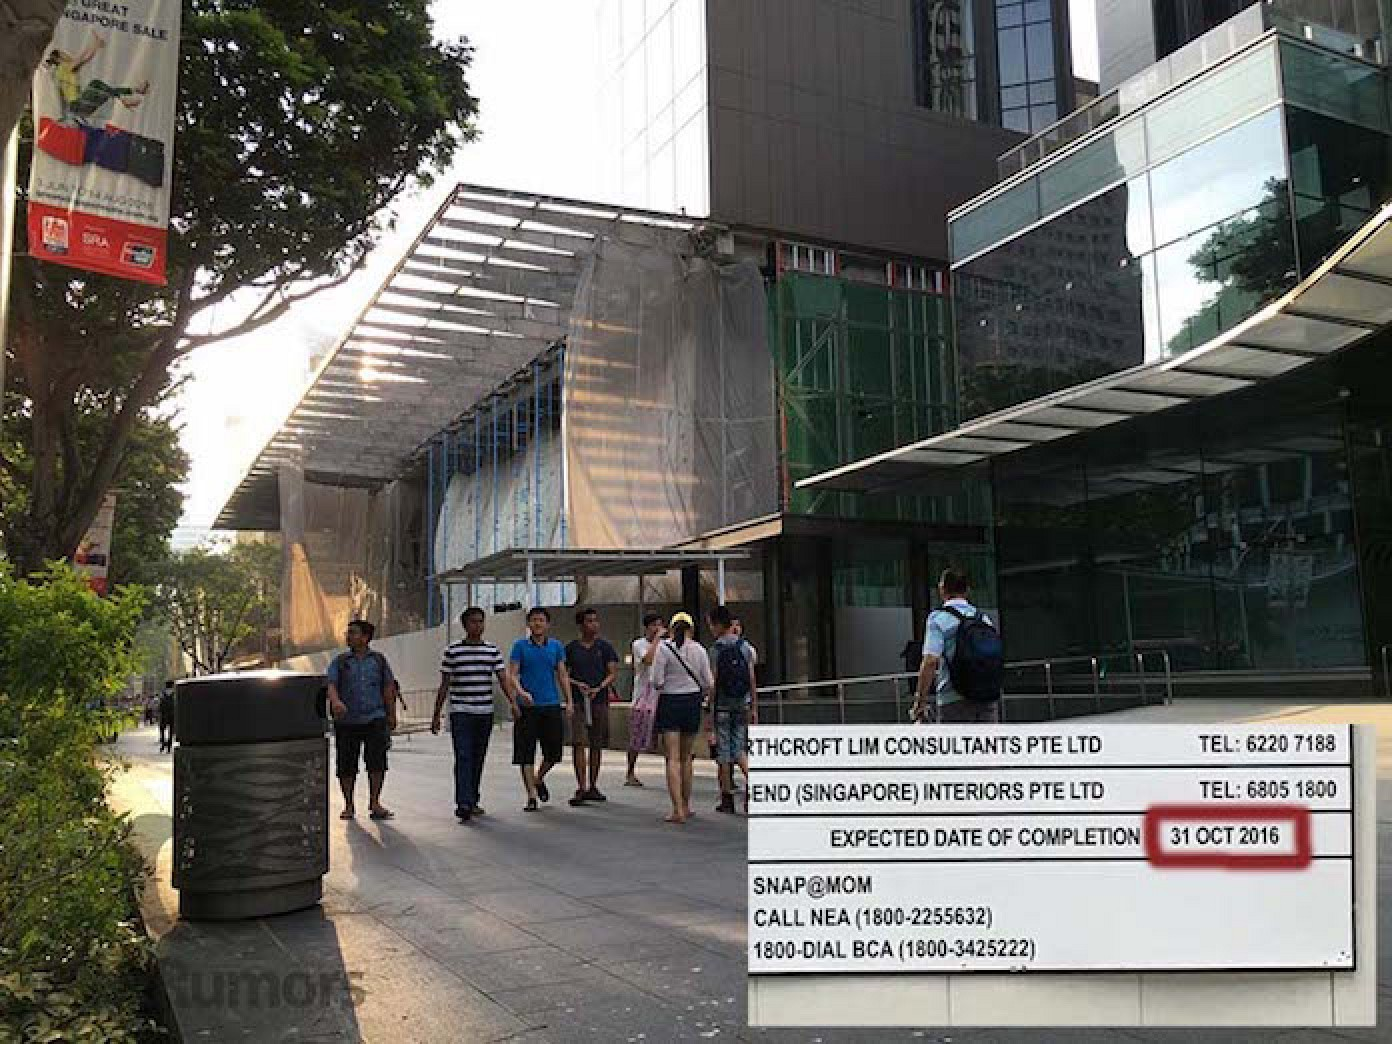 Apple store Singapore construction